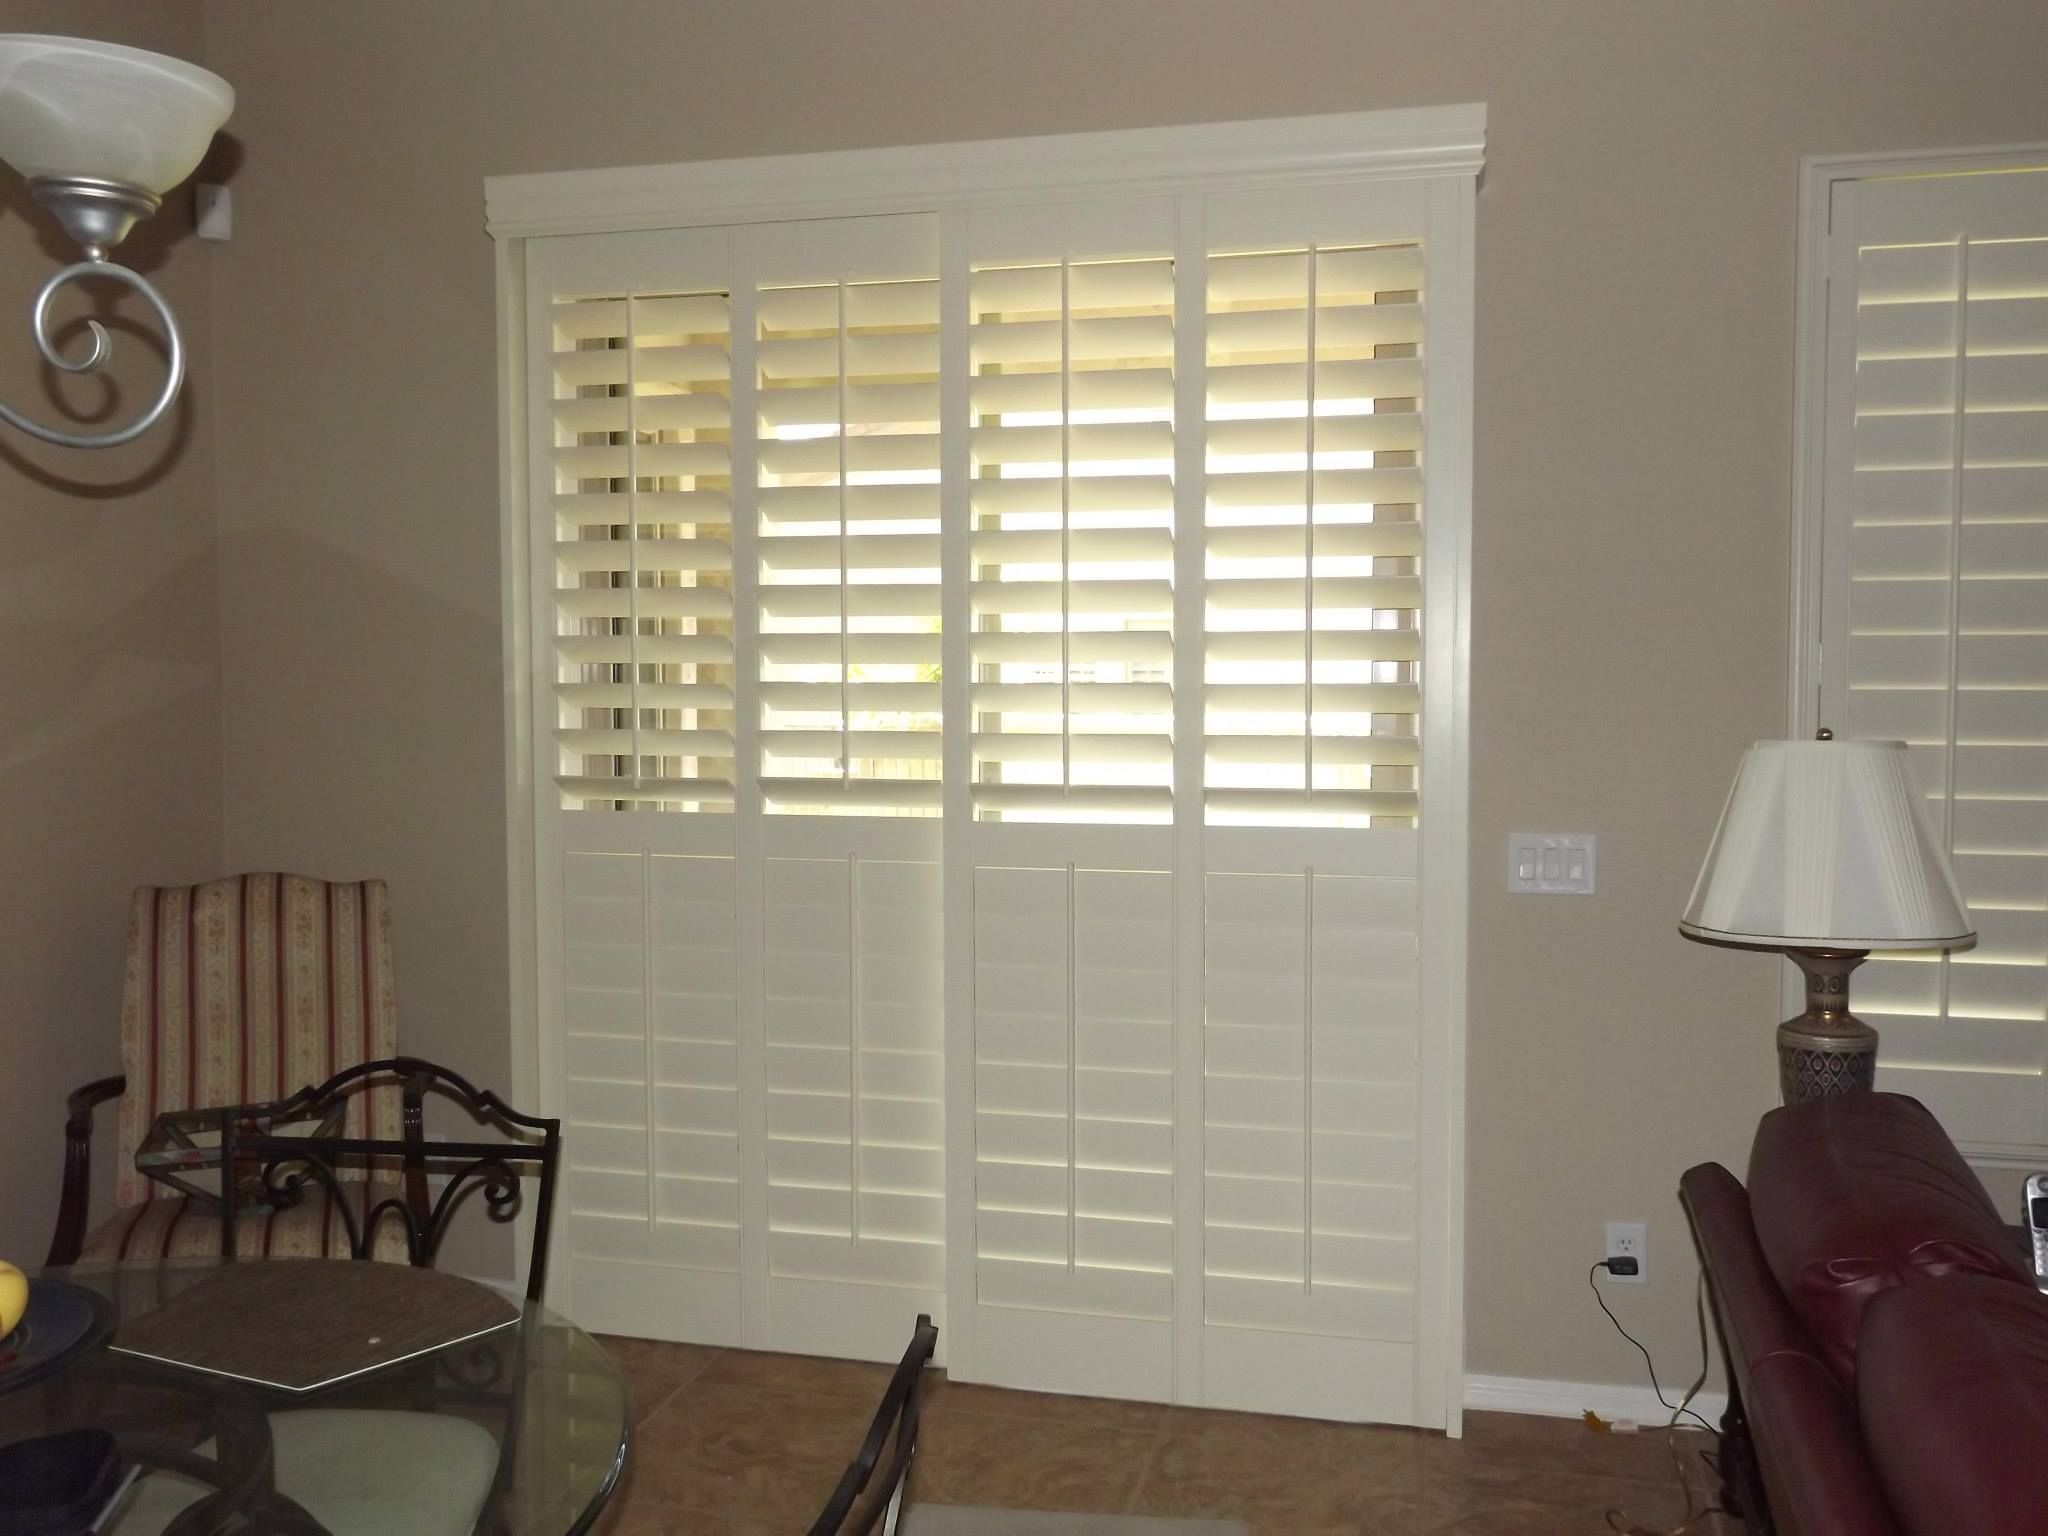 Plantation Shutters On A Sliding Glass Door Top Part Of The Louvers